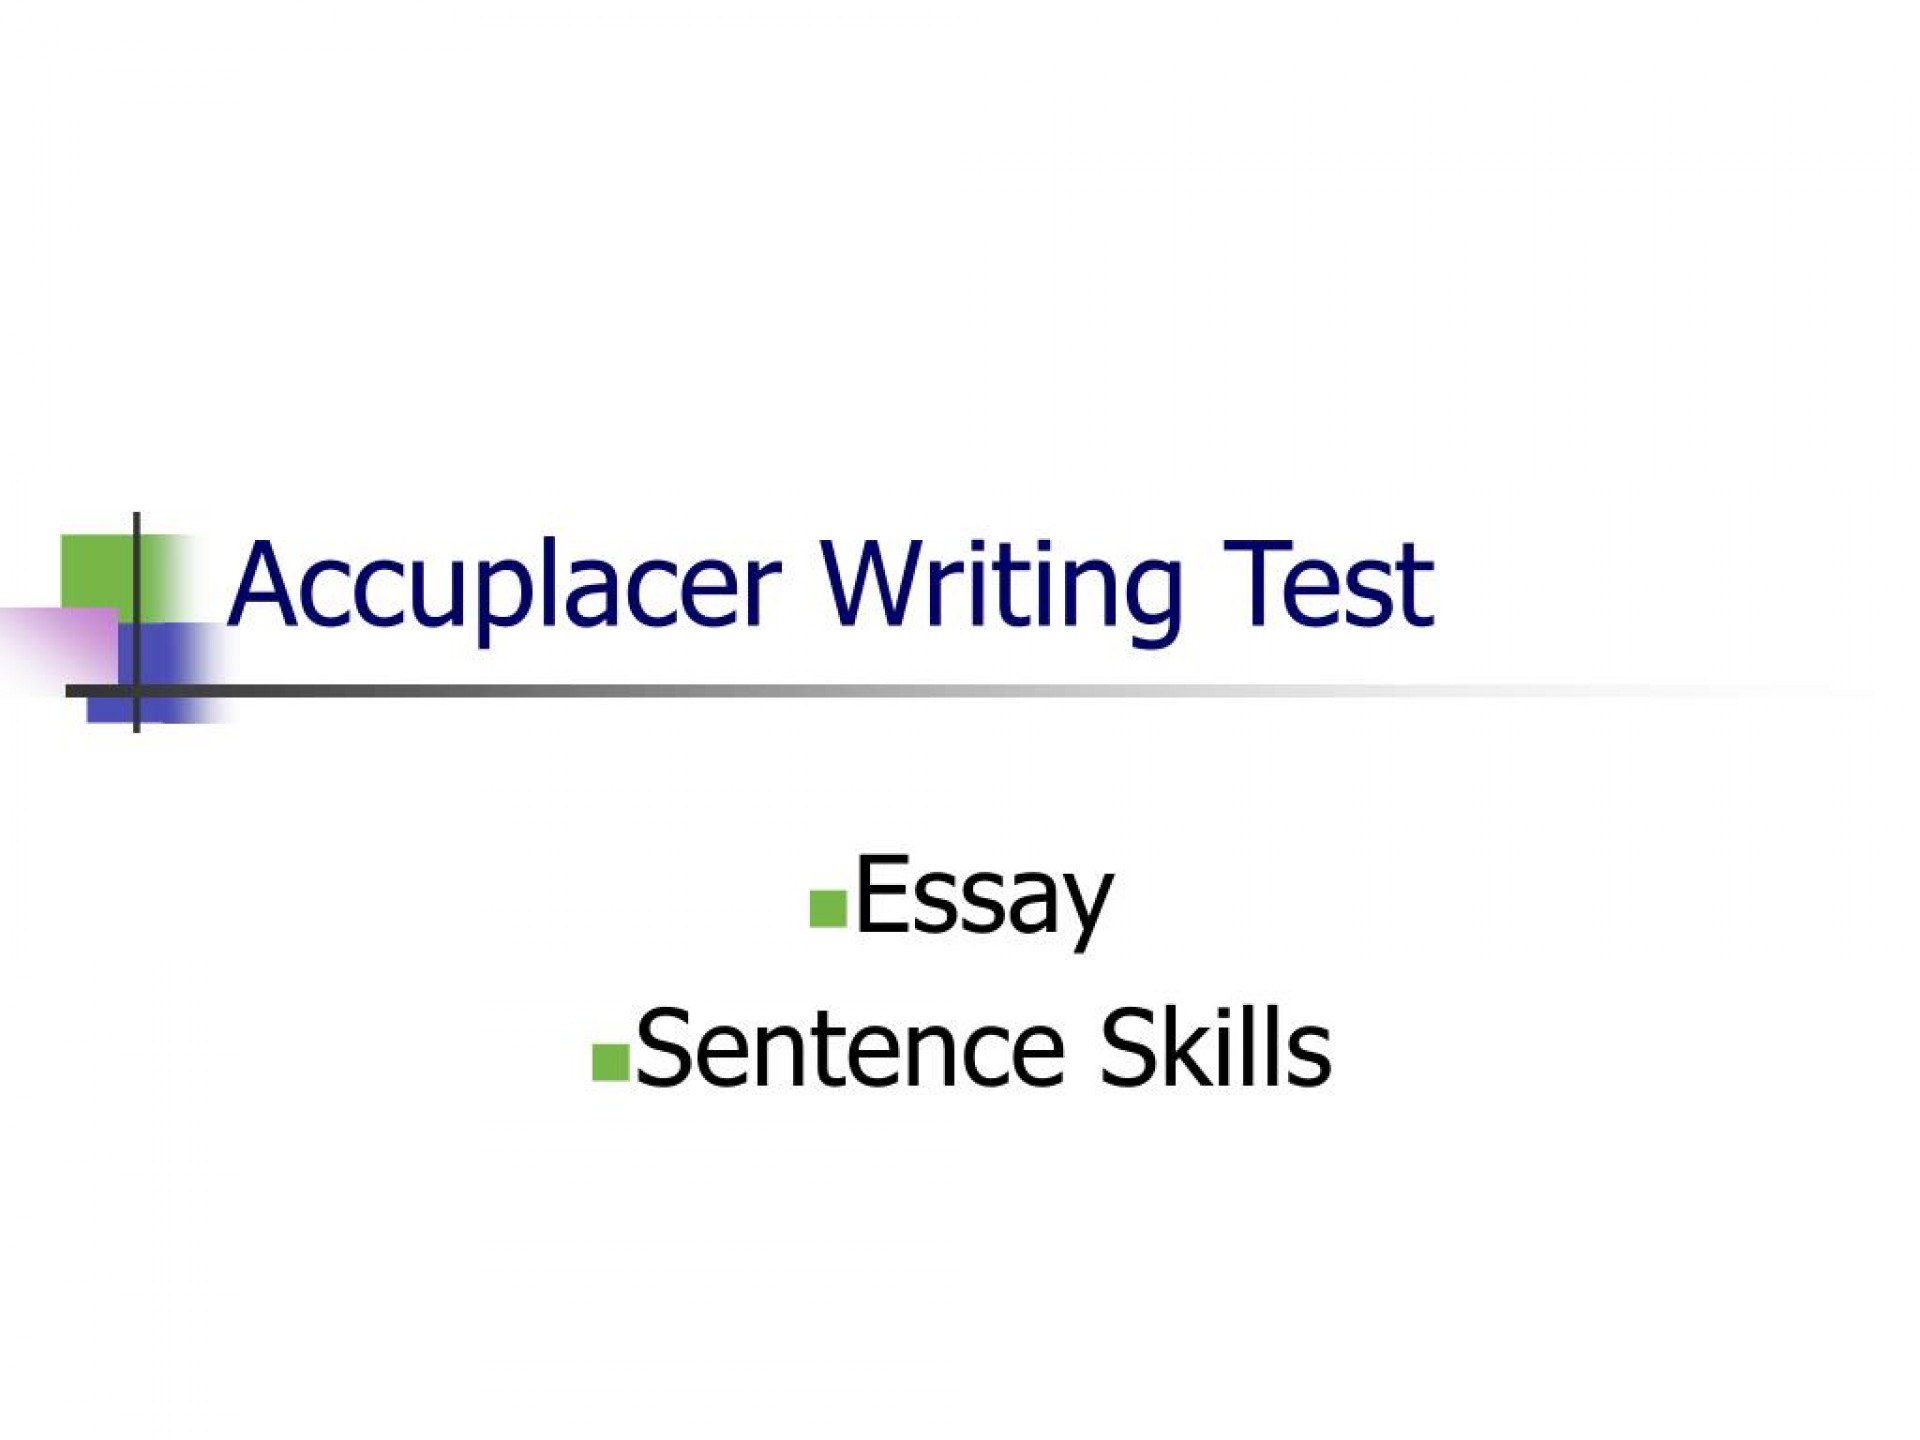 020 Accuplacer Essay Writing Test L Outstanding Score 7 Study Guide Writeplacer Success 1920